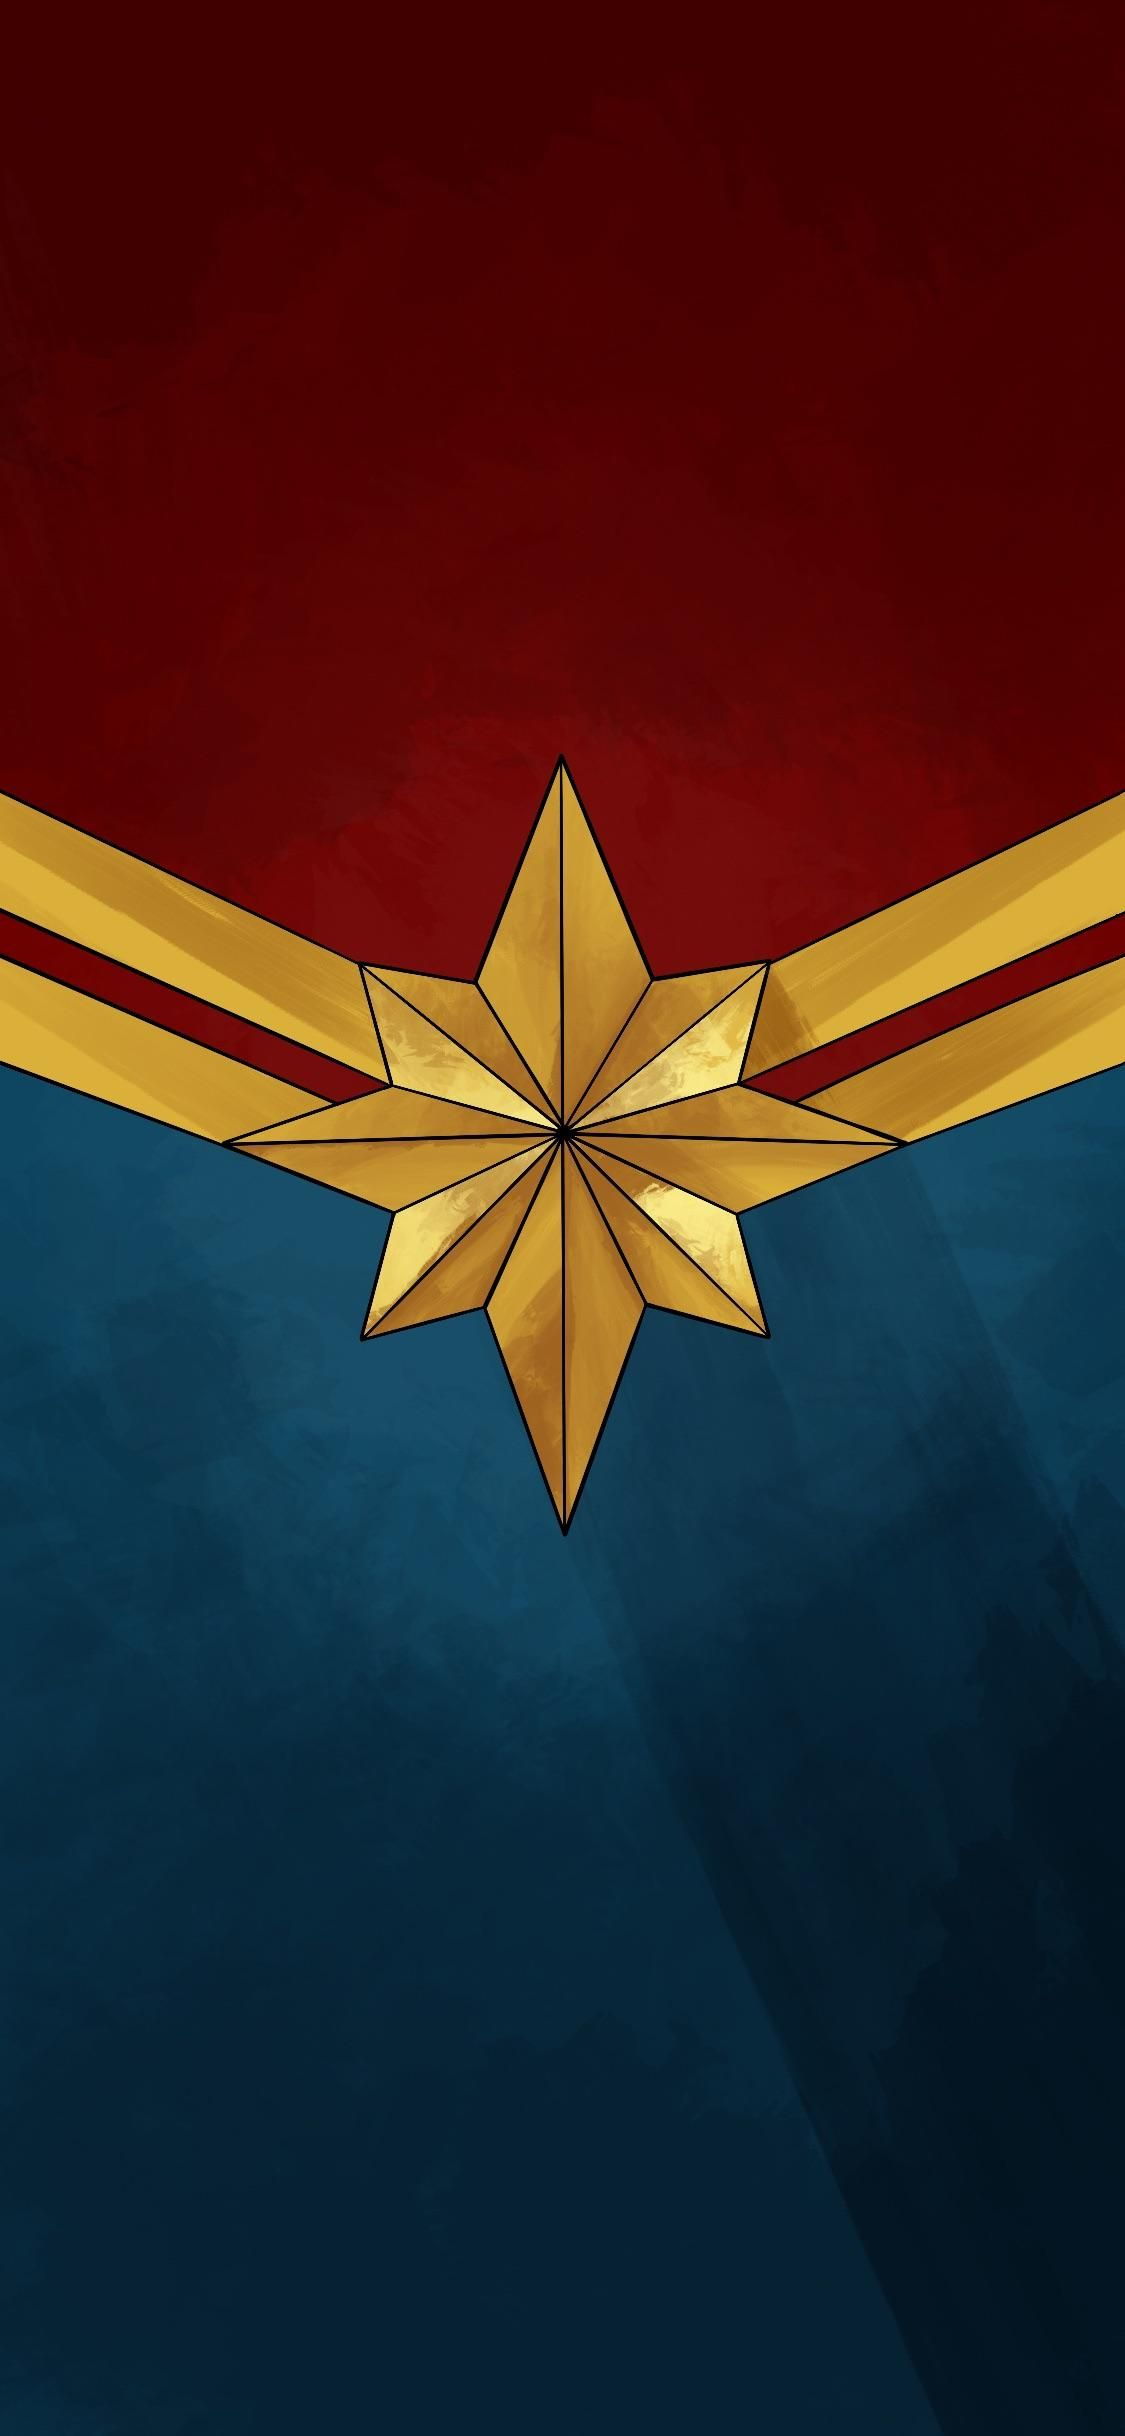 320x240 Captain Marvel Logo 4k Apple Iphone Ipod Touch Galaxy Ace Wallpaper Hd Movies 4k Wallpapers Images Photos And Background Captain Marvel Marvel Logo Marvel Wallpaper